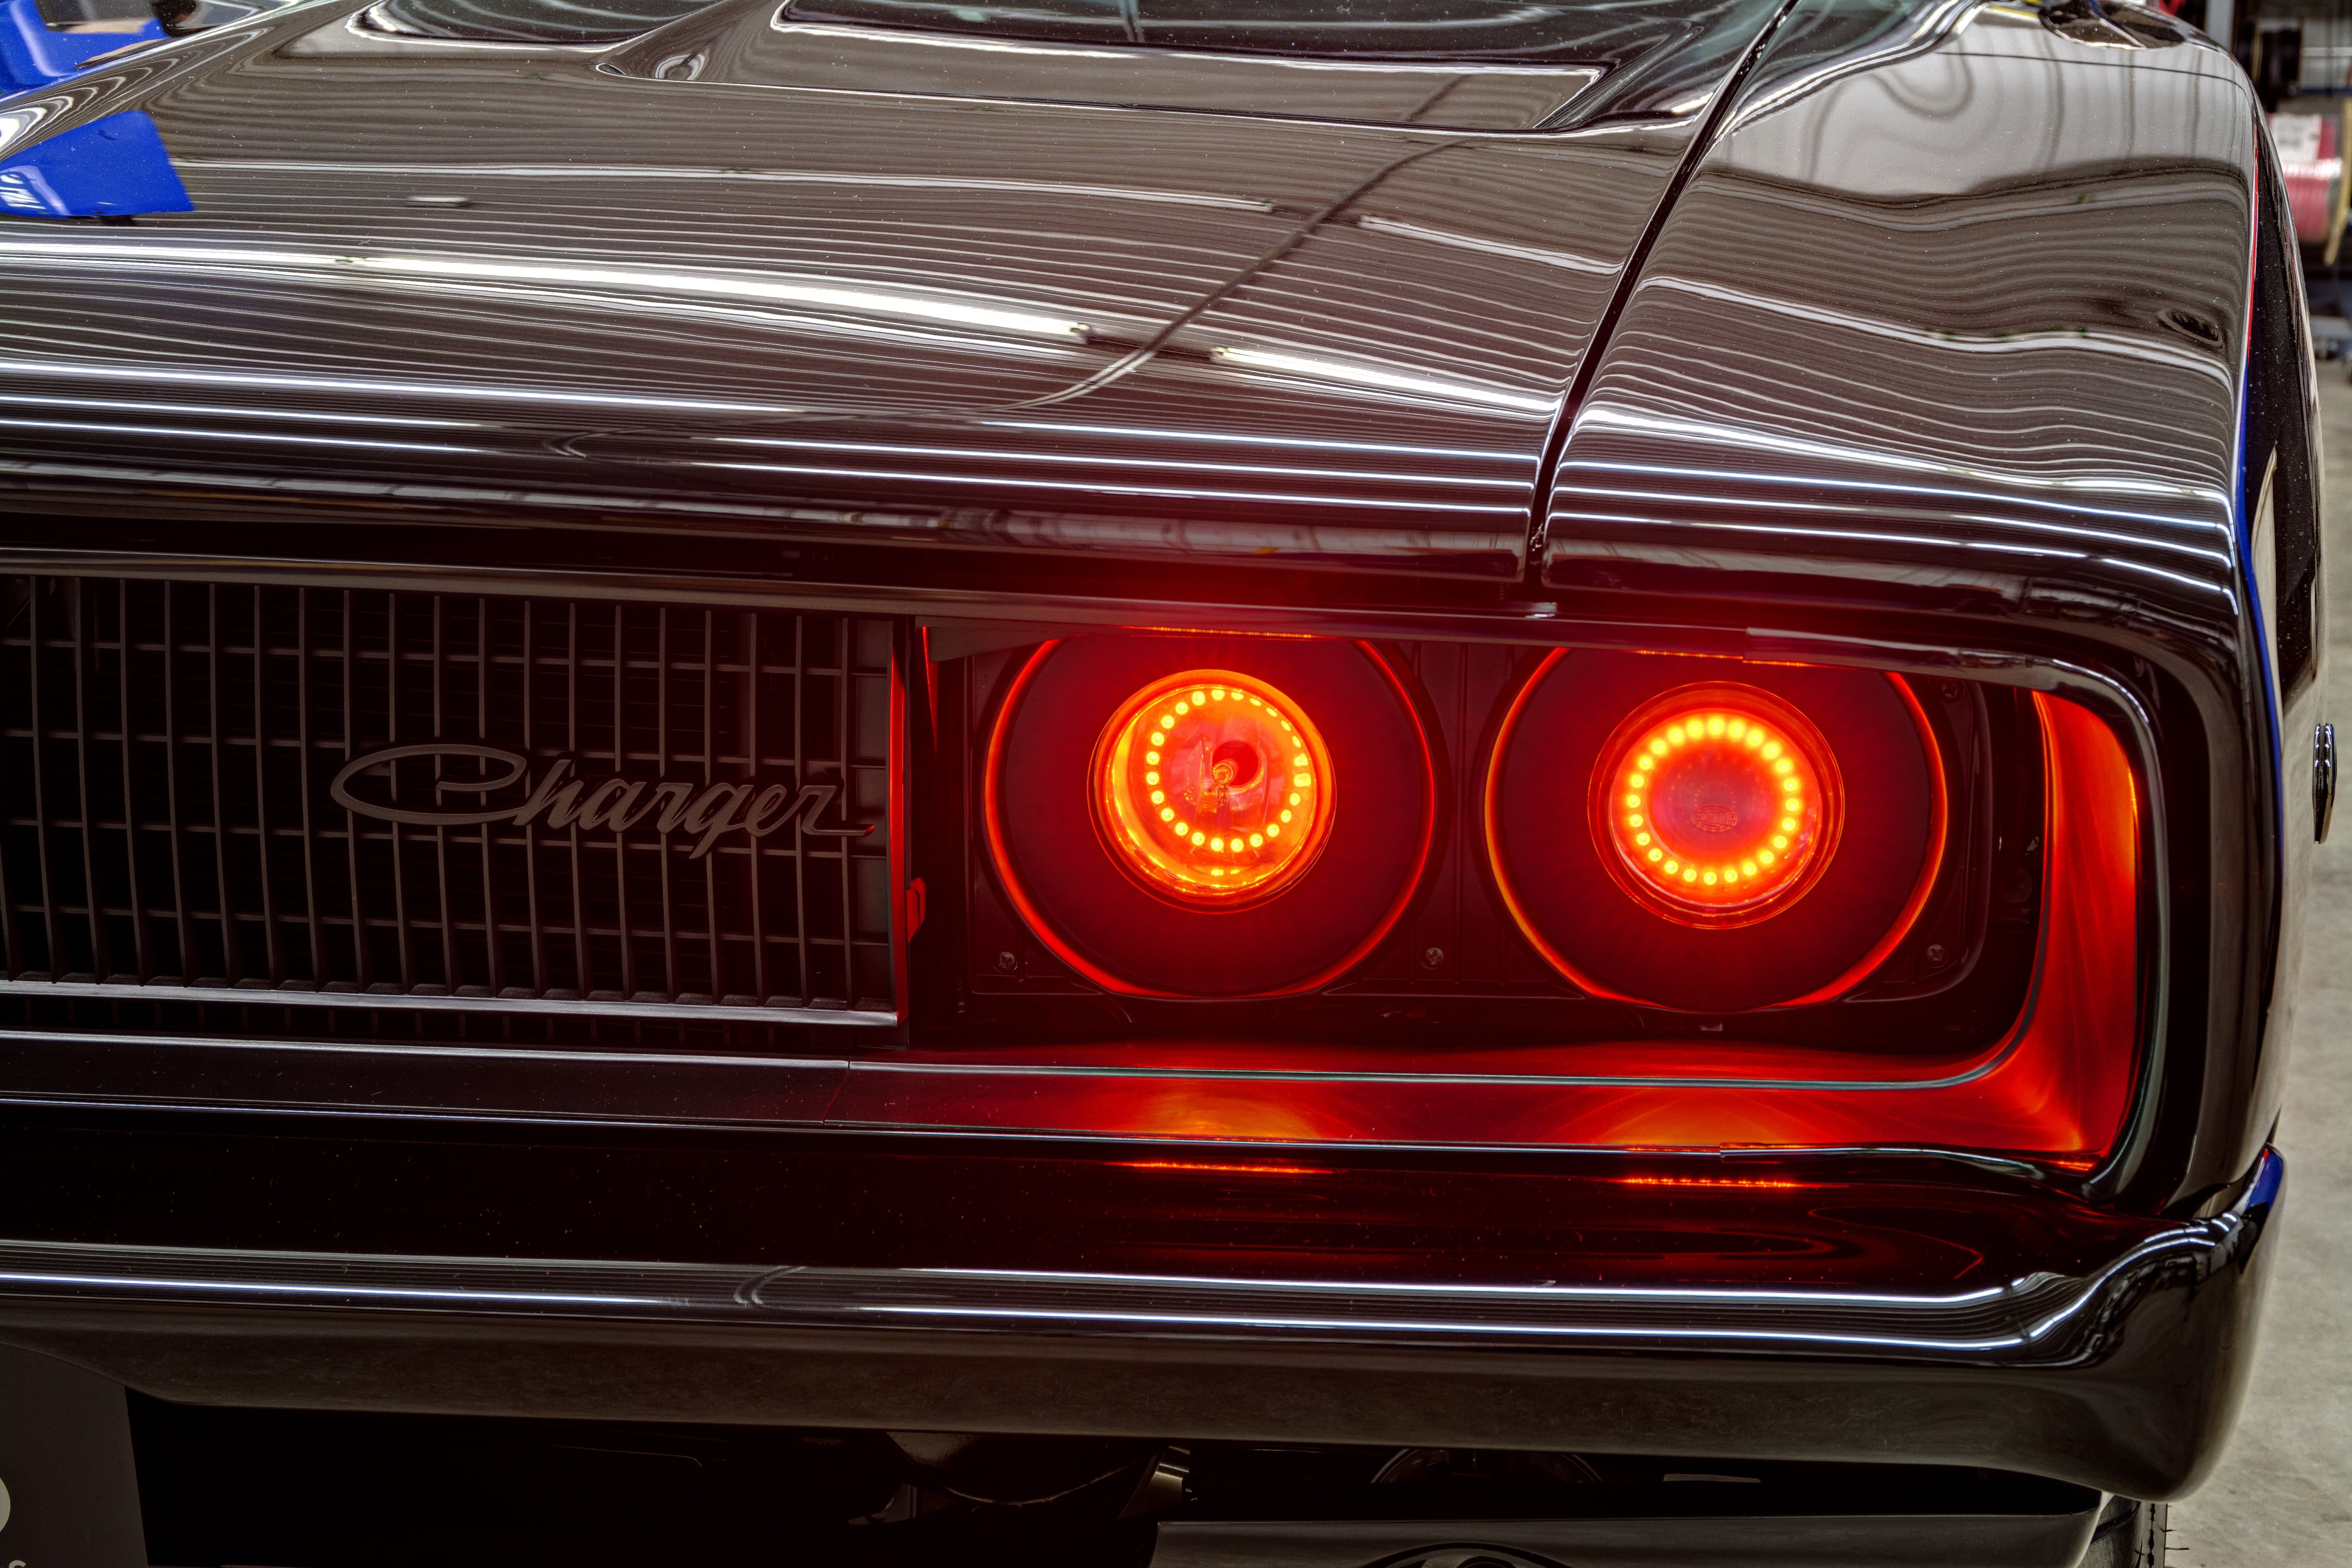 Dodge Charger RT Wallpapers and Background Images   stmednet 6000x4000